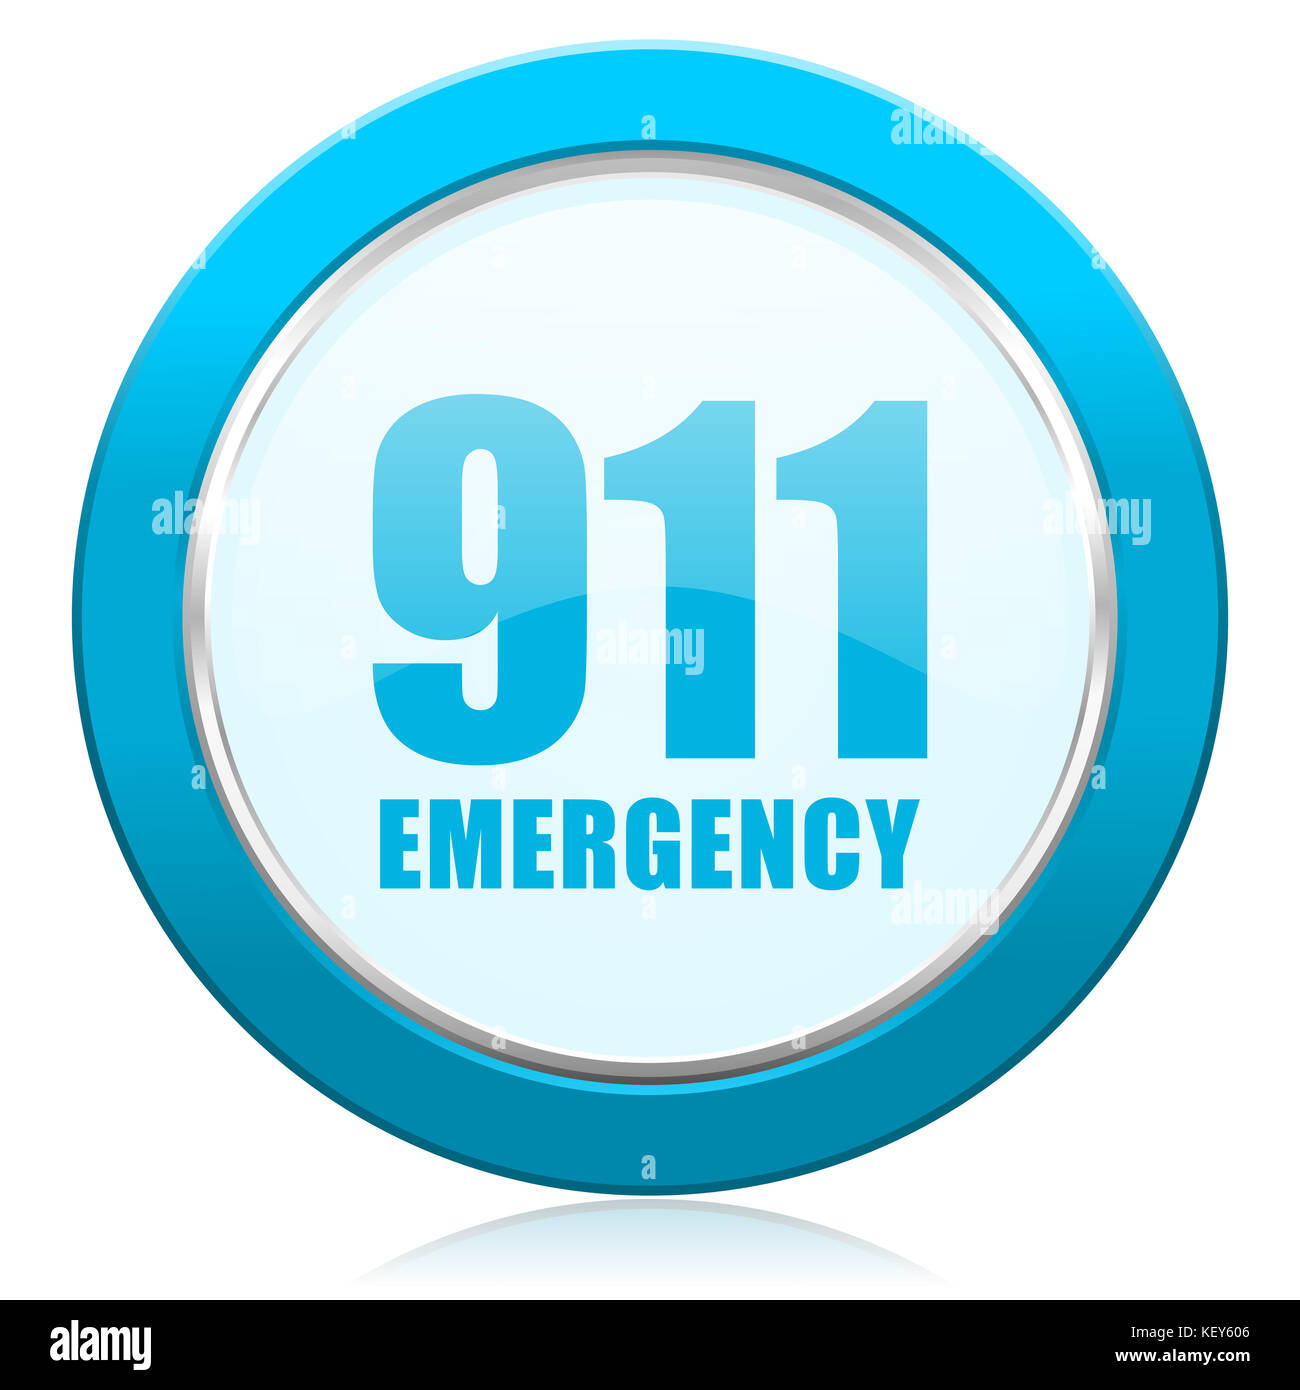 Number emergency 911 blue chrome silver metallic border web icon. Round button for internet and mobile phone application - Stock Image